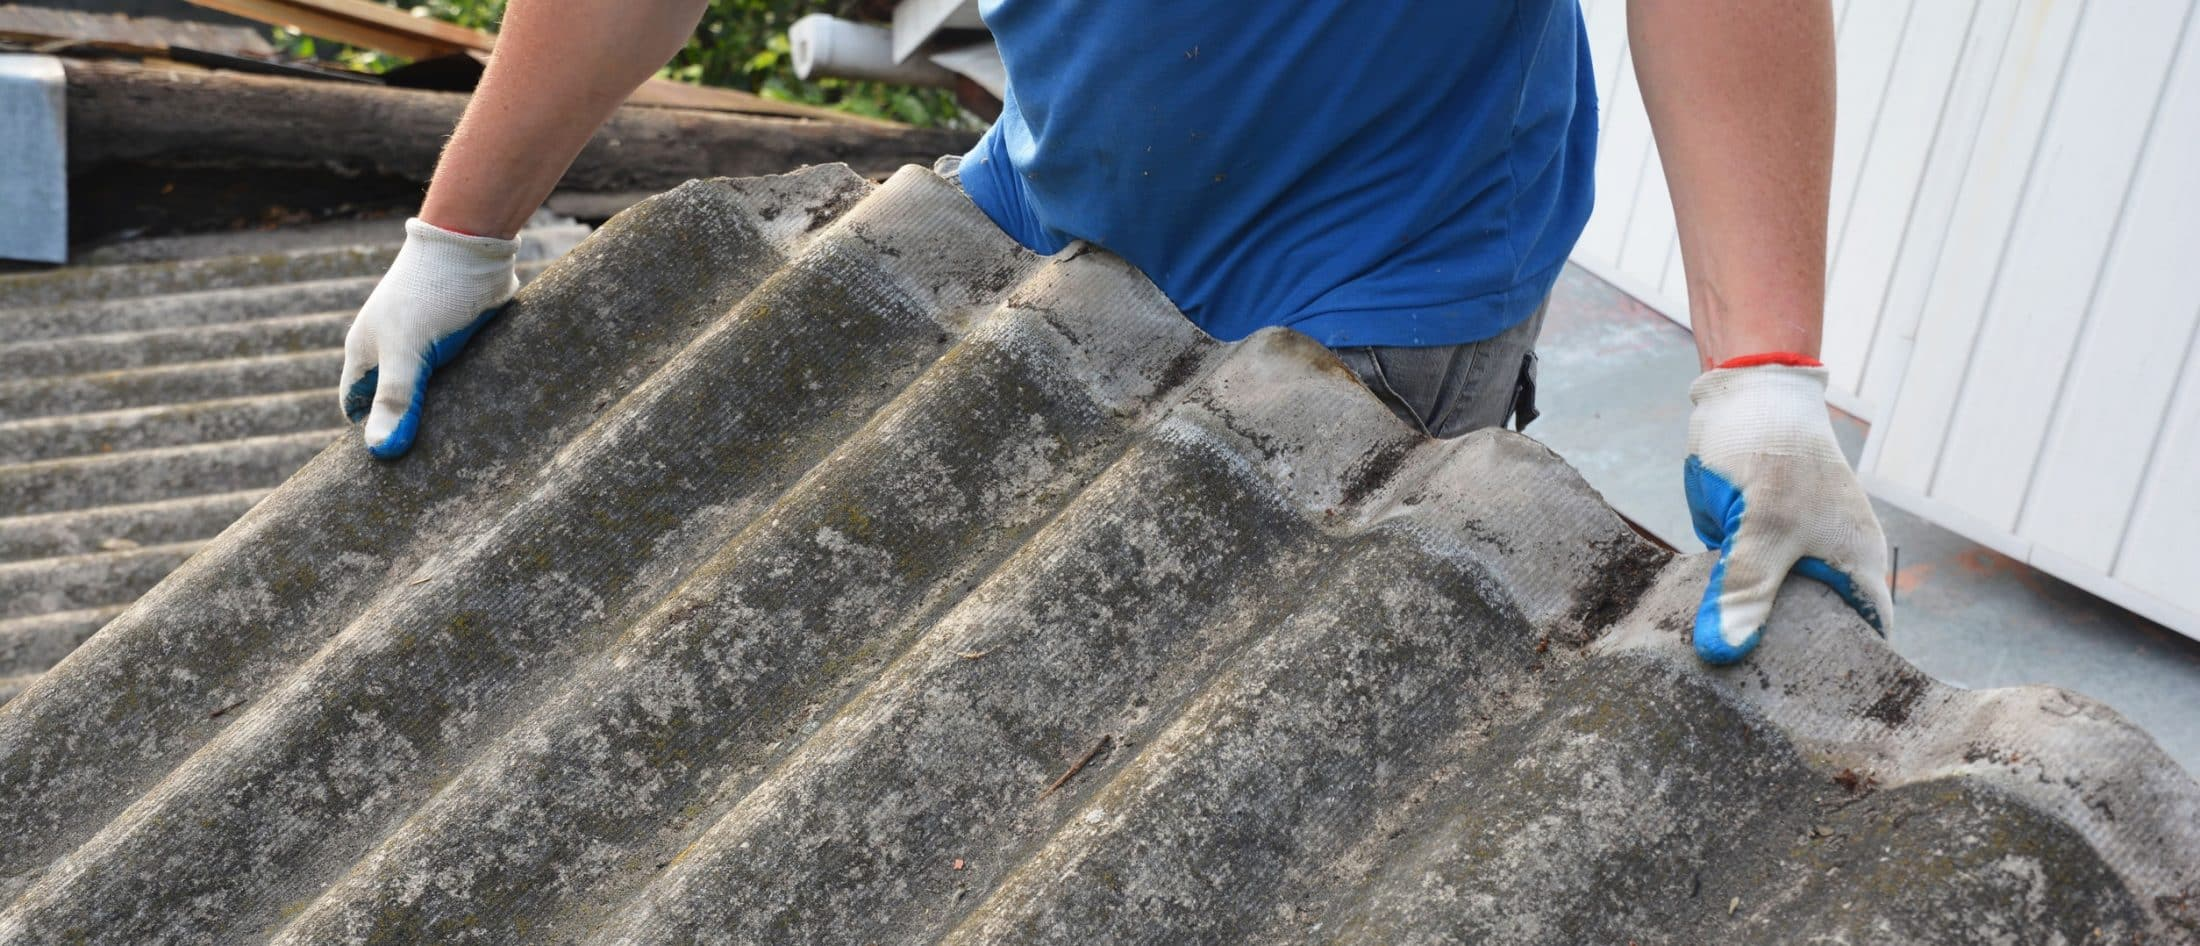 Worker removing asbestos shingles